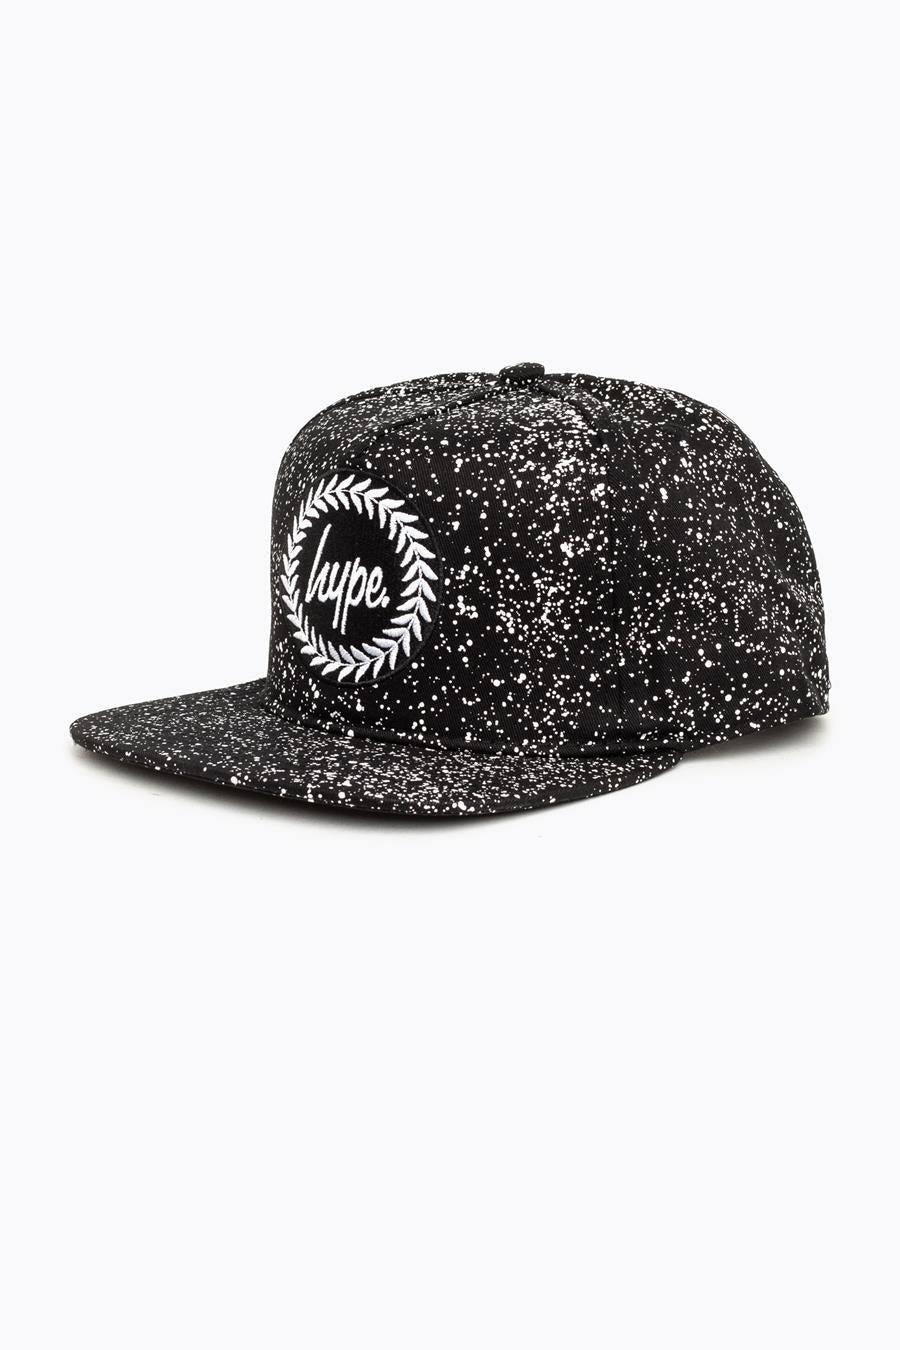 ca760c81086 HYPE BLACK SPECKLE CREST SNAPBACK HAT – JustHype ltd